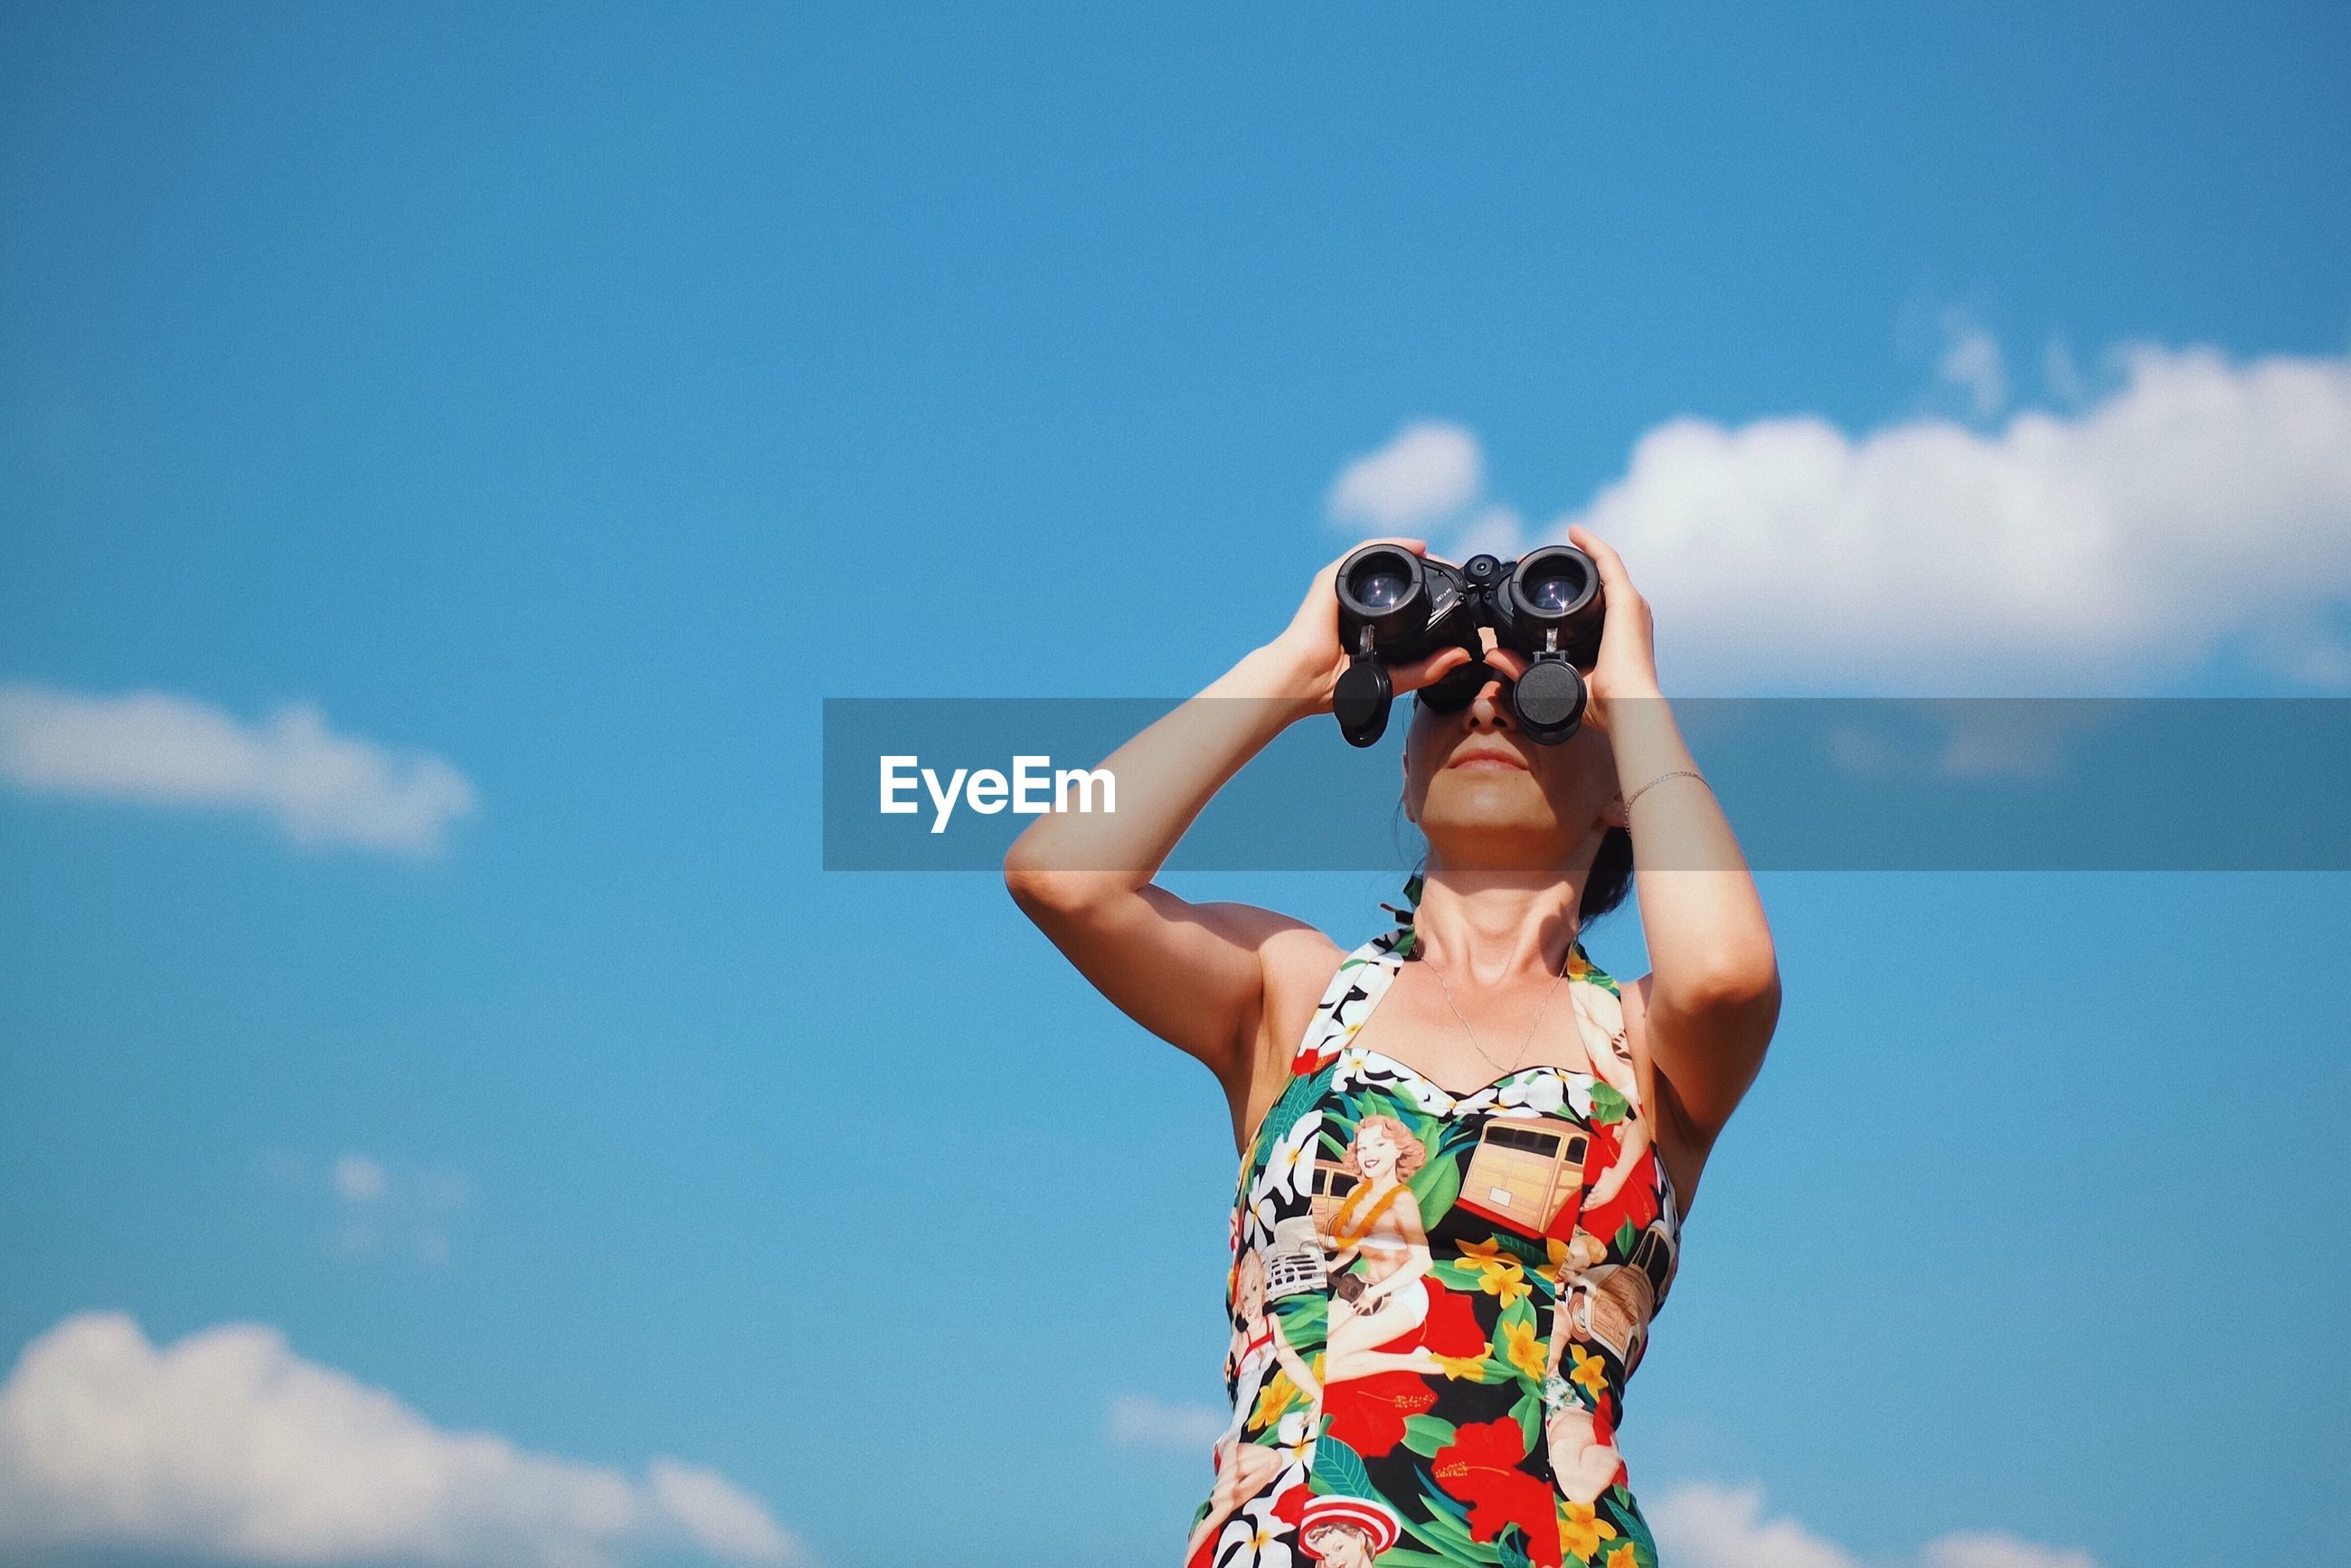 Low angle view of woman looking through binoculars against blue sky